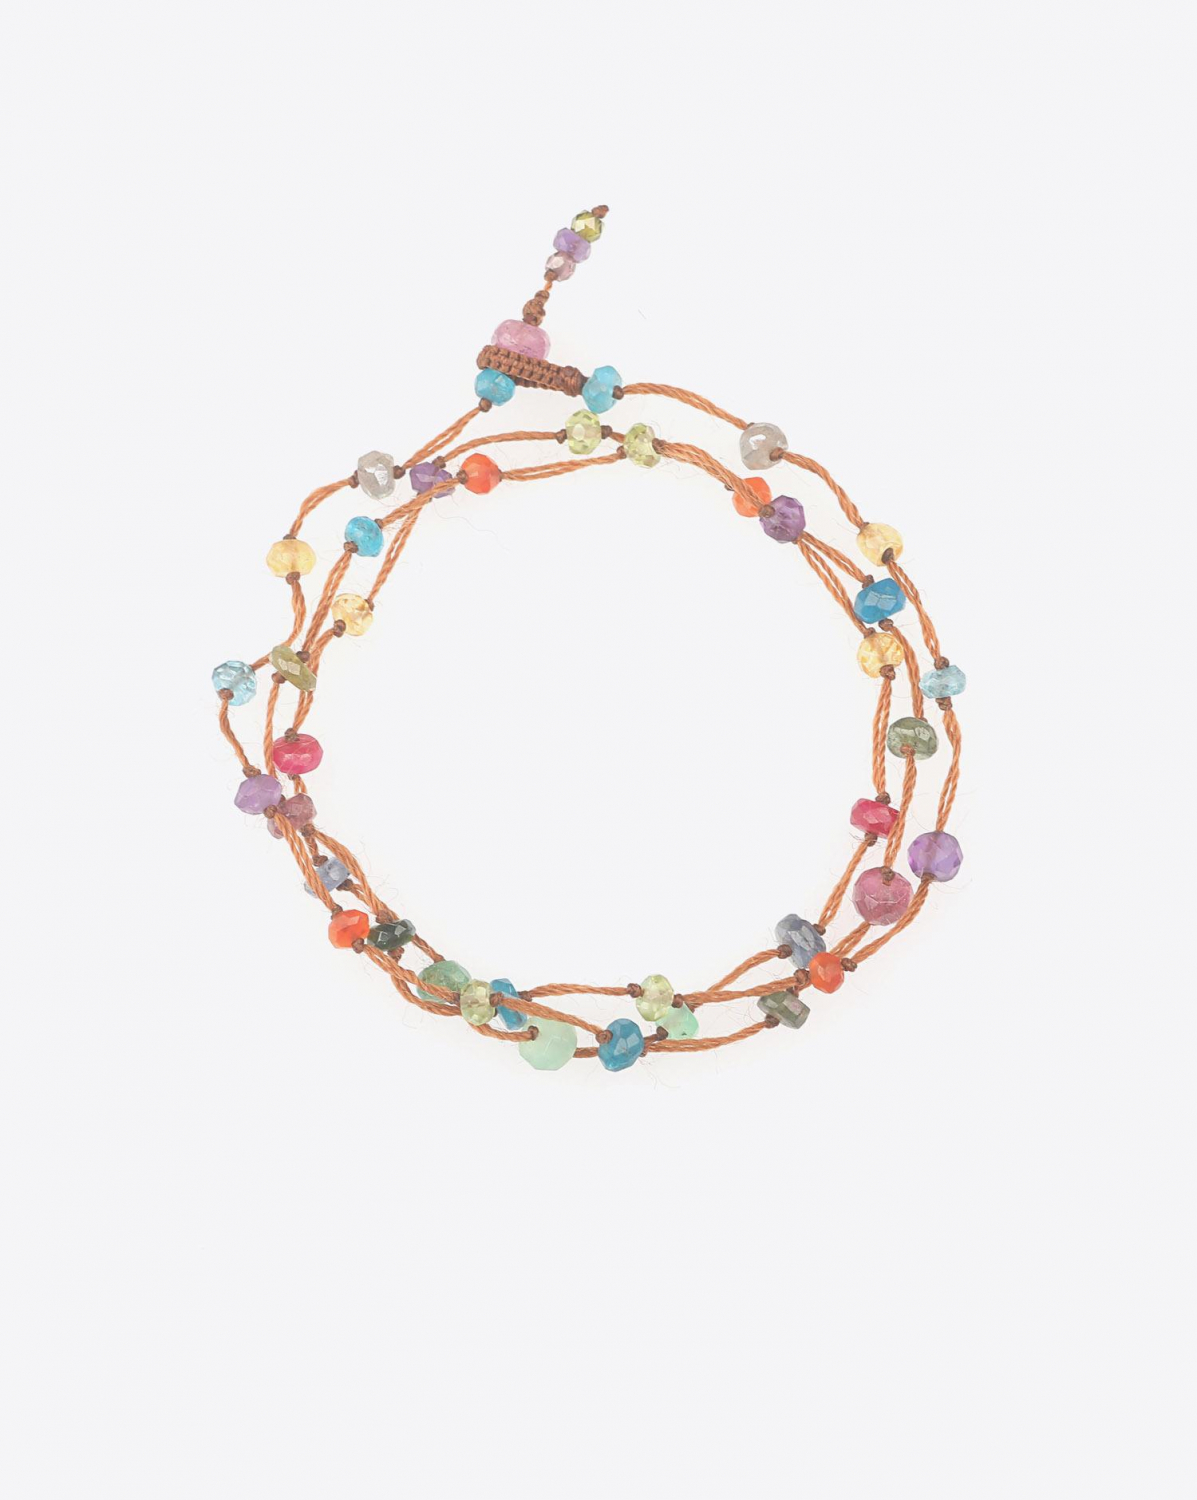 Sharing Bracelet 3 Tours/Collier Court  LOOPY FAIRY - Cordon Tabac